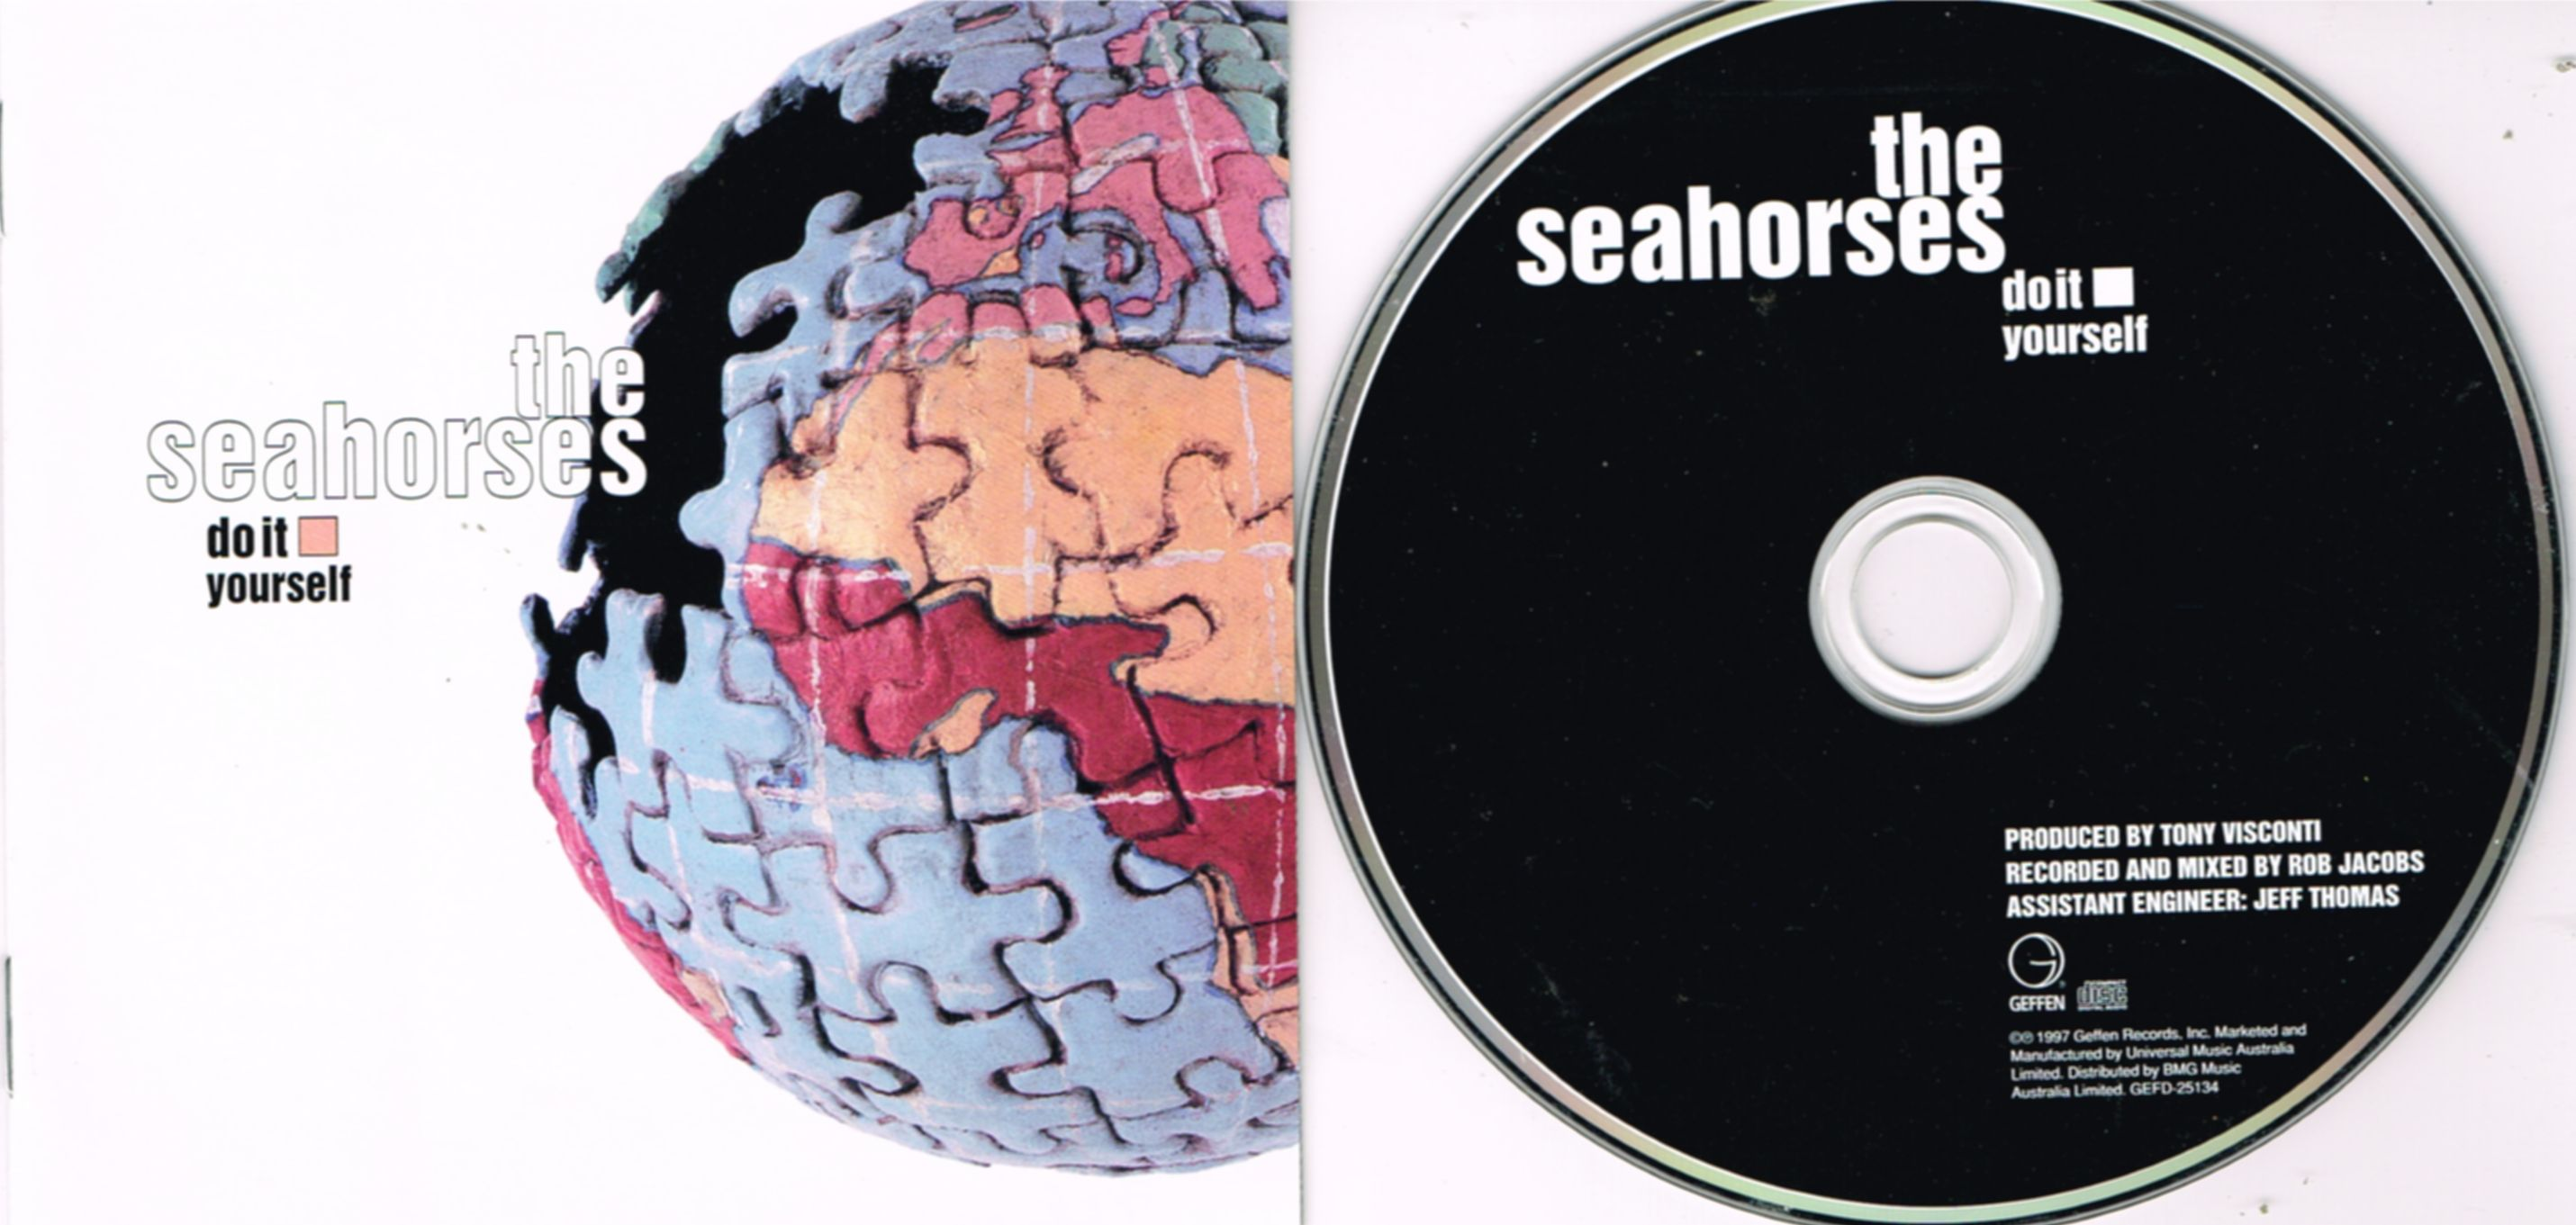 Seahorses do it yourself records lps vinyl and cds musicstack seahorses do it yourself cd solutioingenieria Gallery